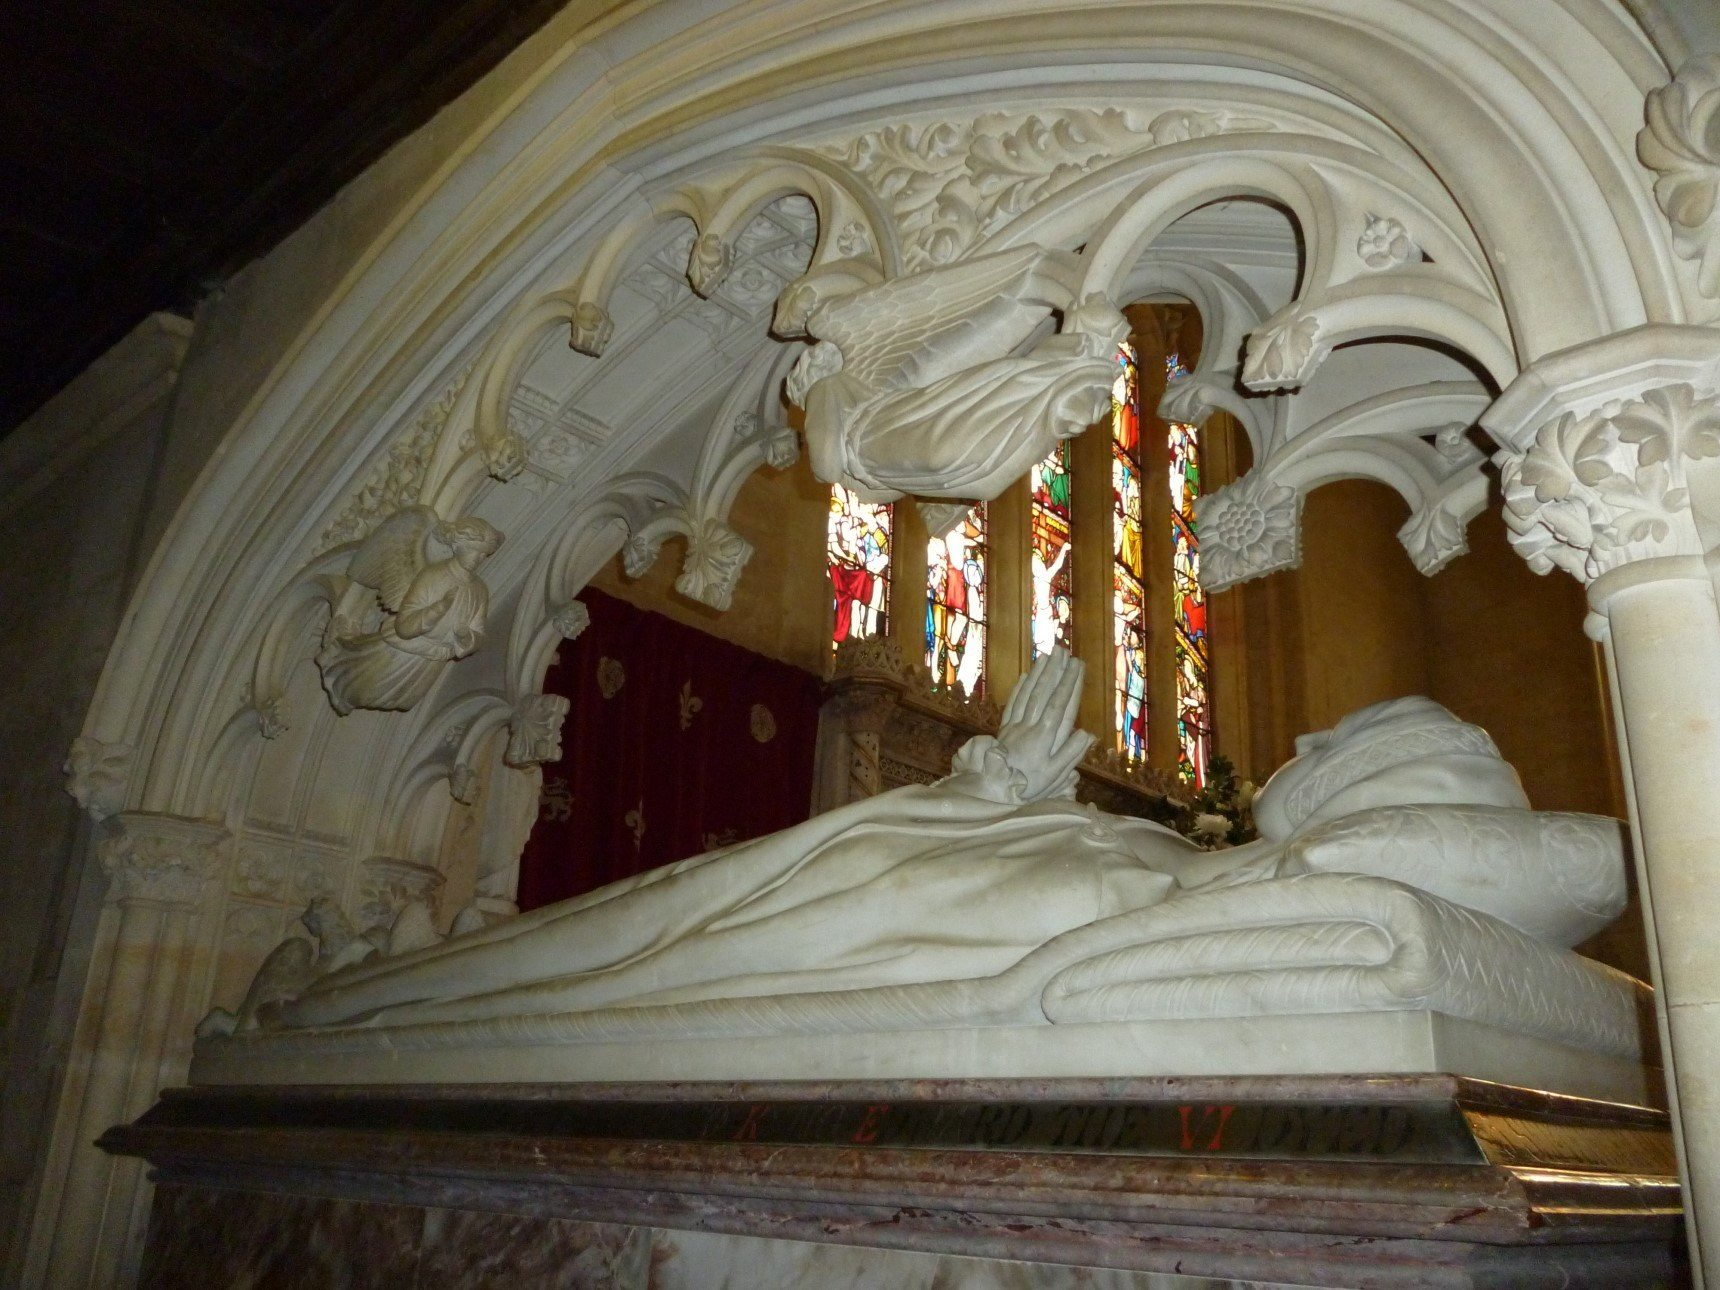 Tomb of Katherine Parr at Sudeley Castle